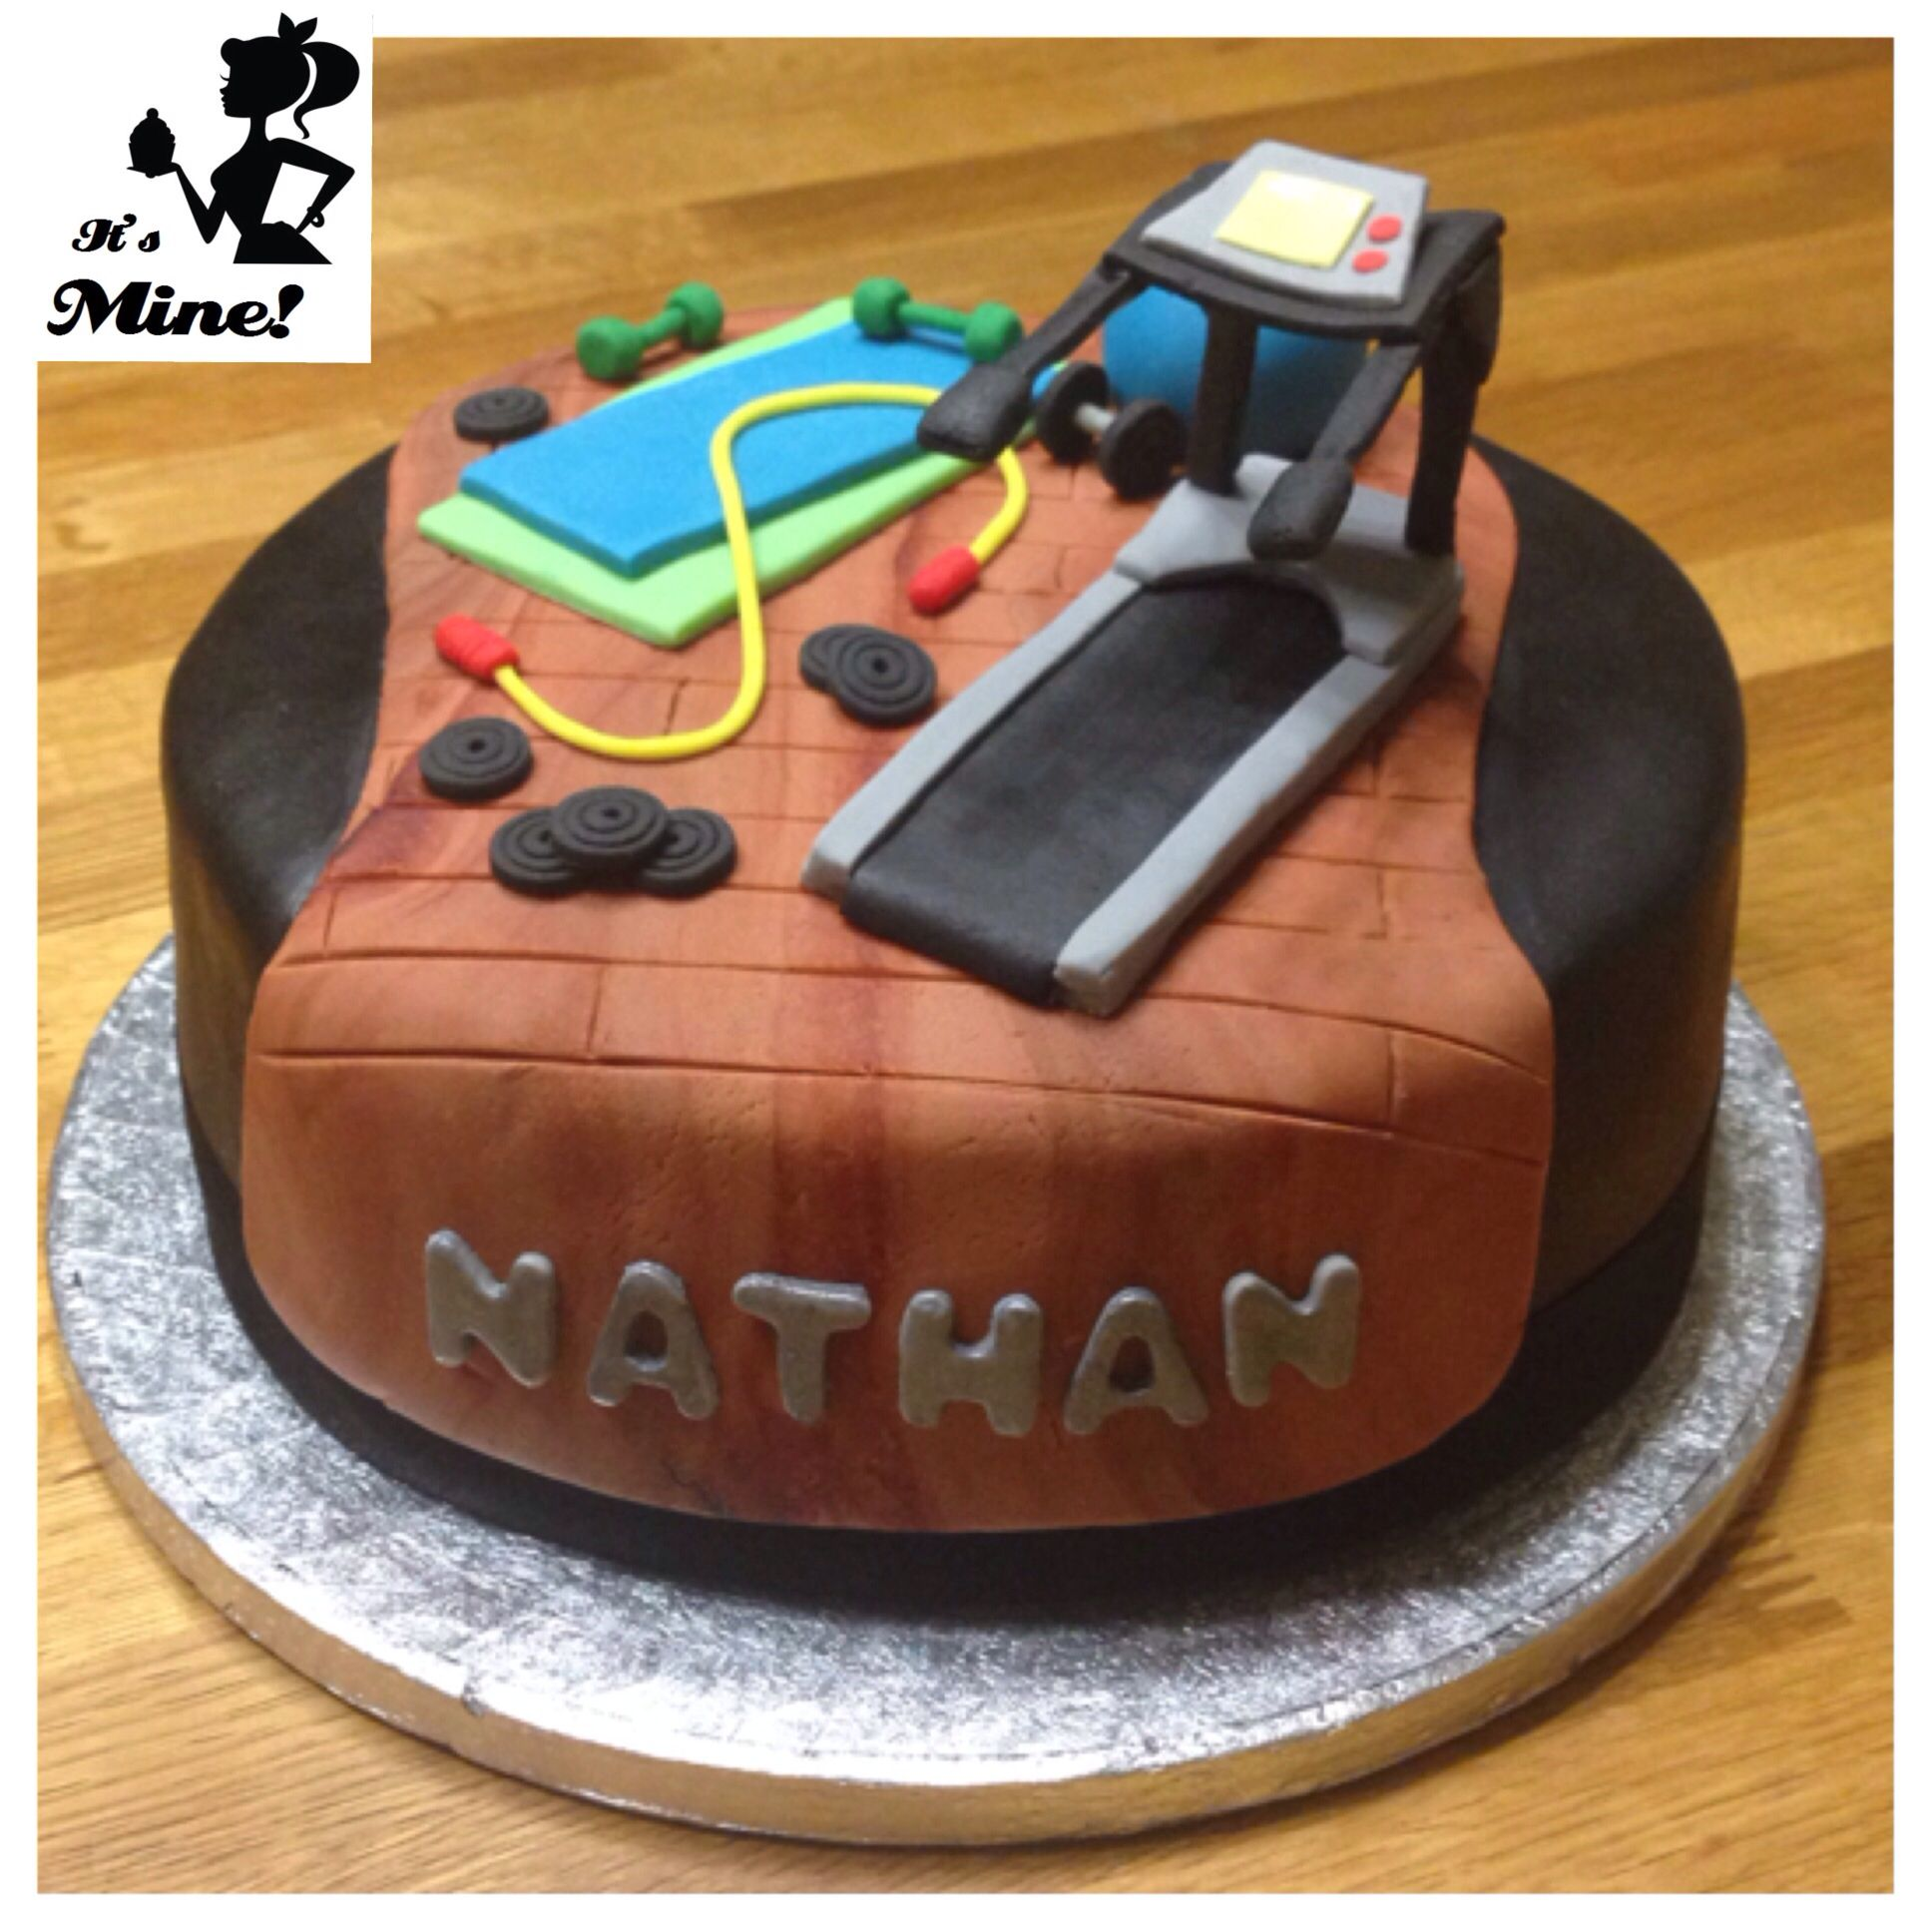 Gym equipment and treadmill cake Ideas para cumpleanos ...